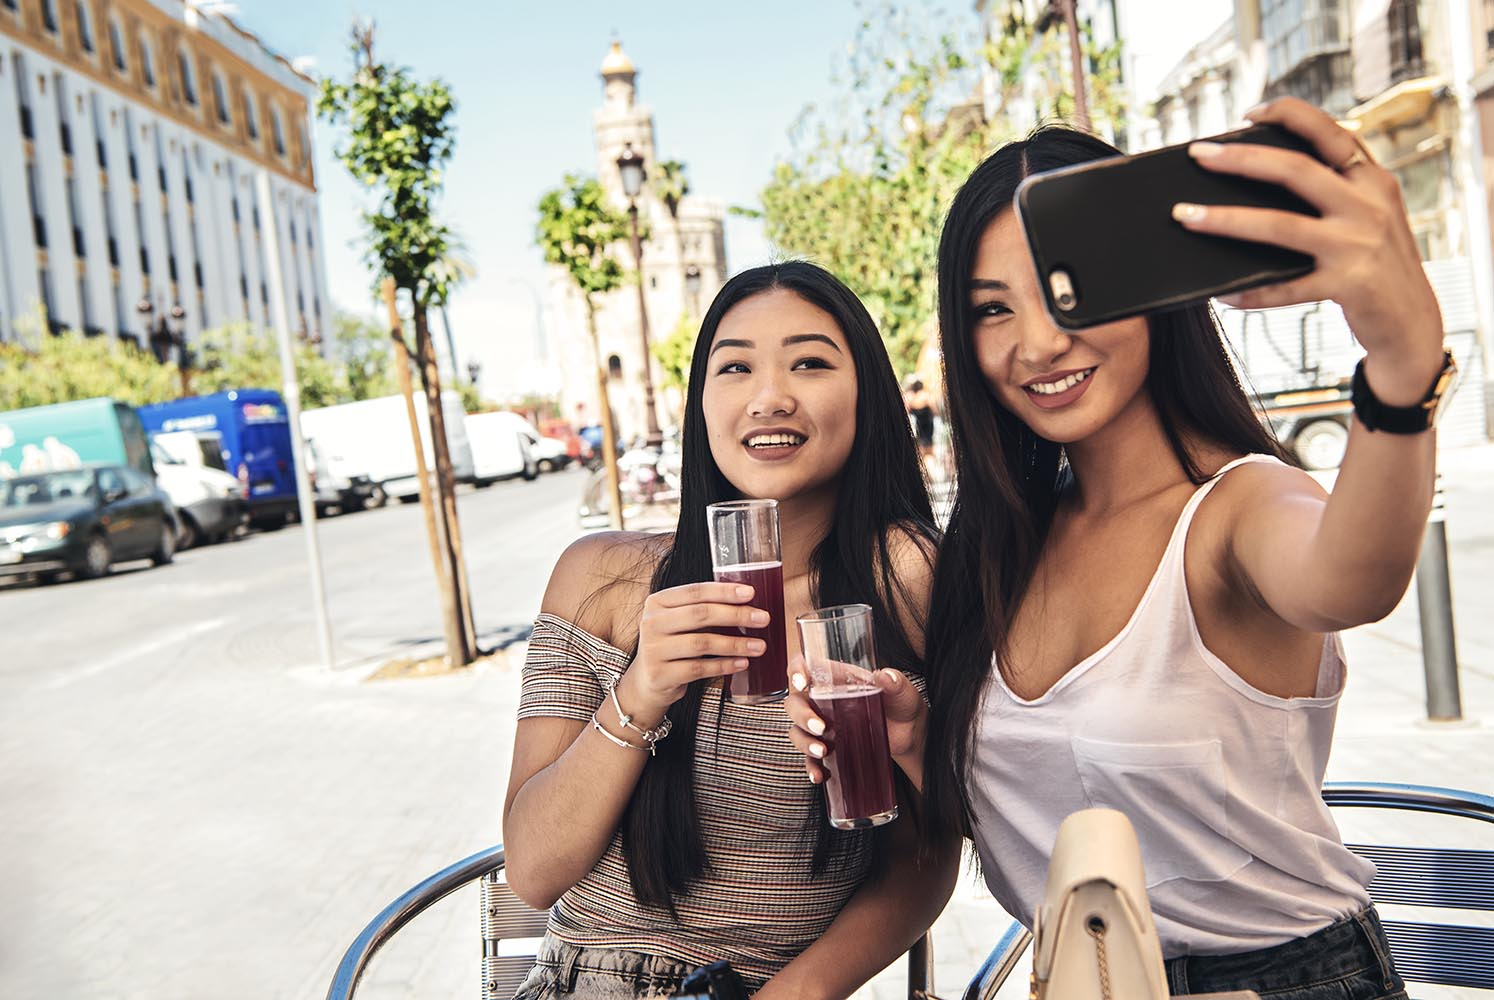 Chinese girls making selfie holding glasses